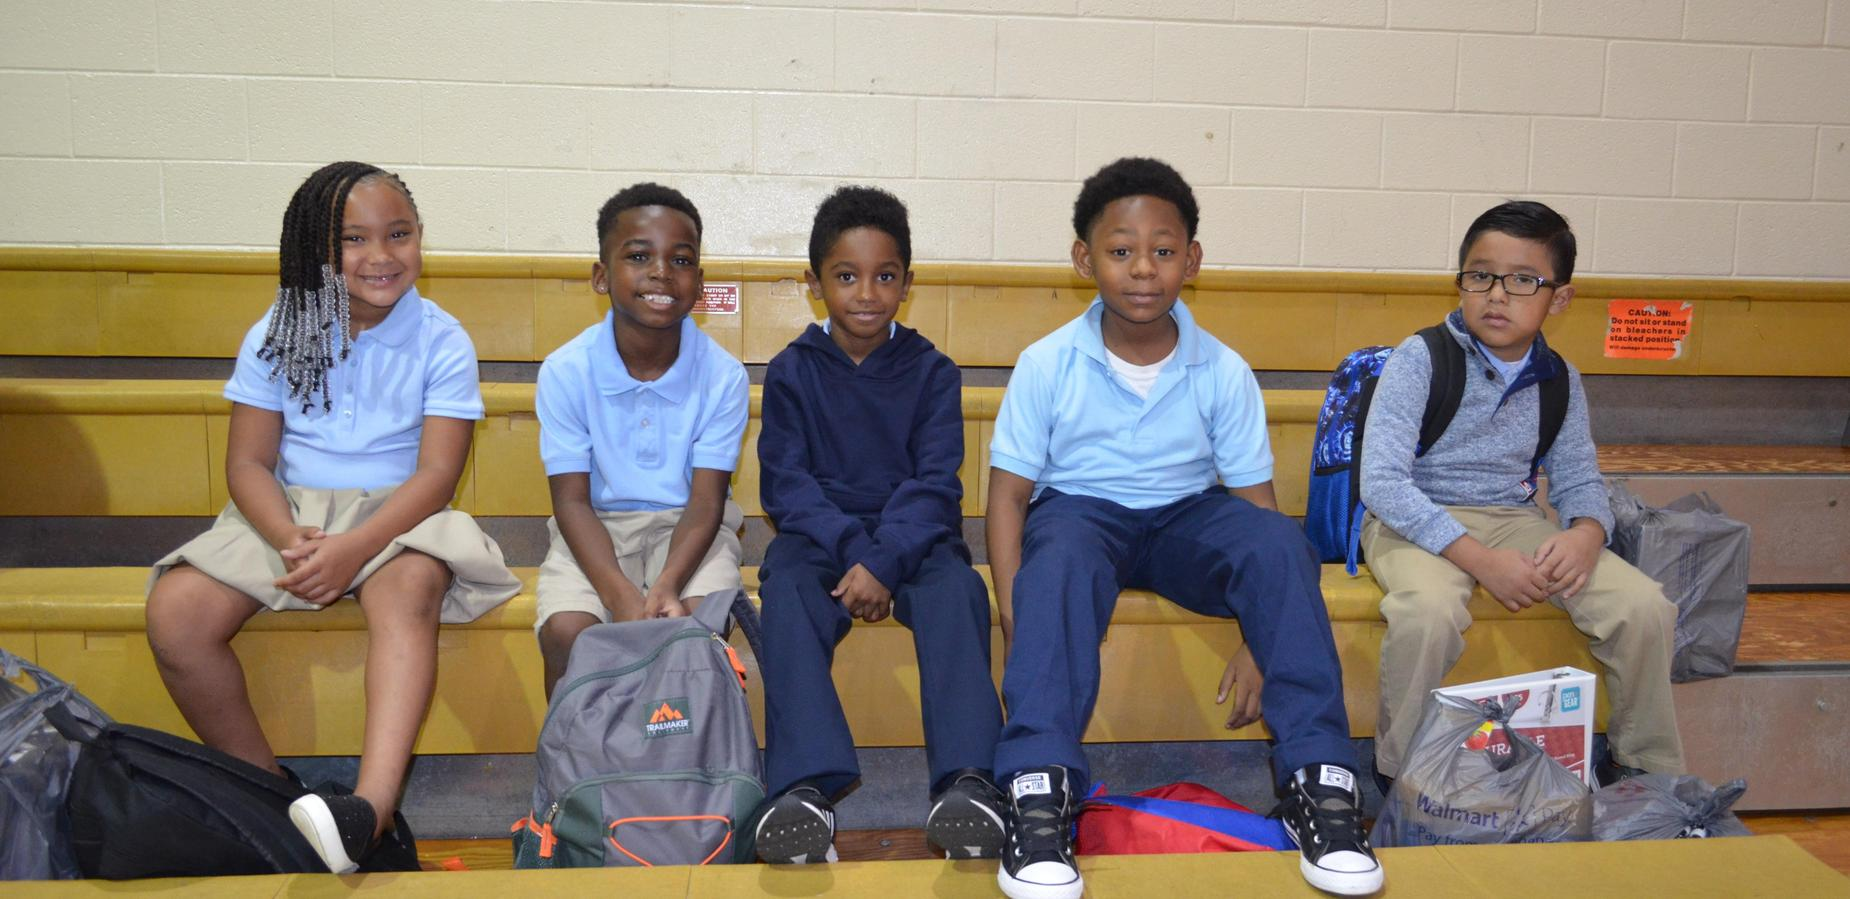 Students enjoying the first day of school assembly.